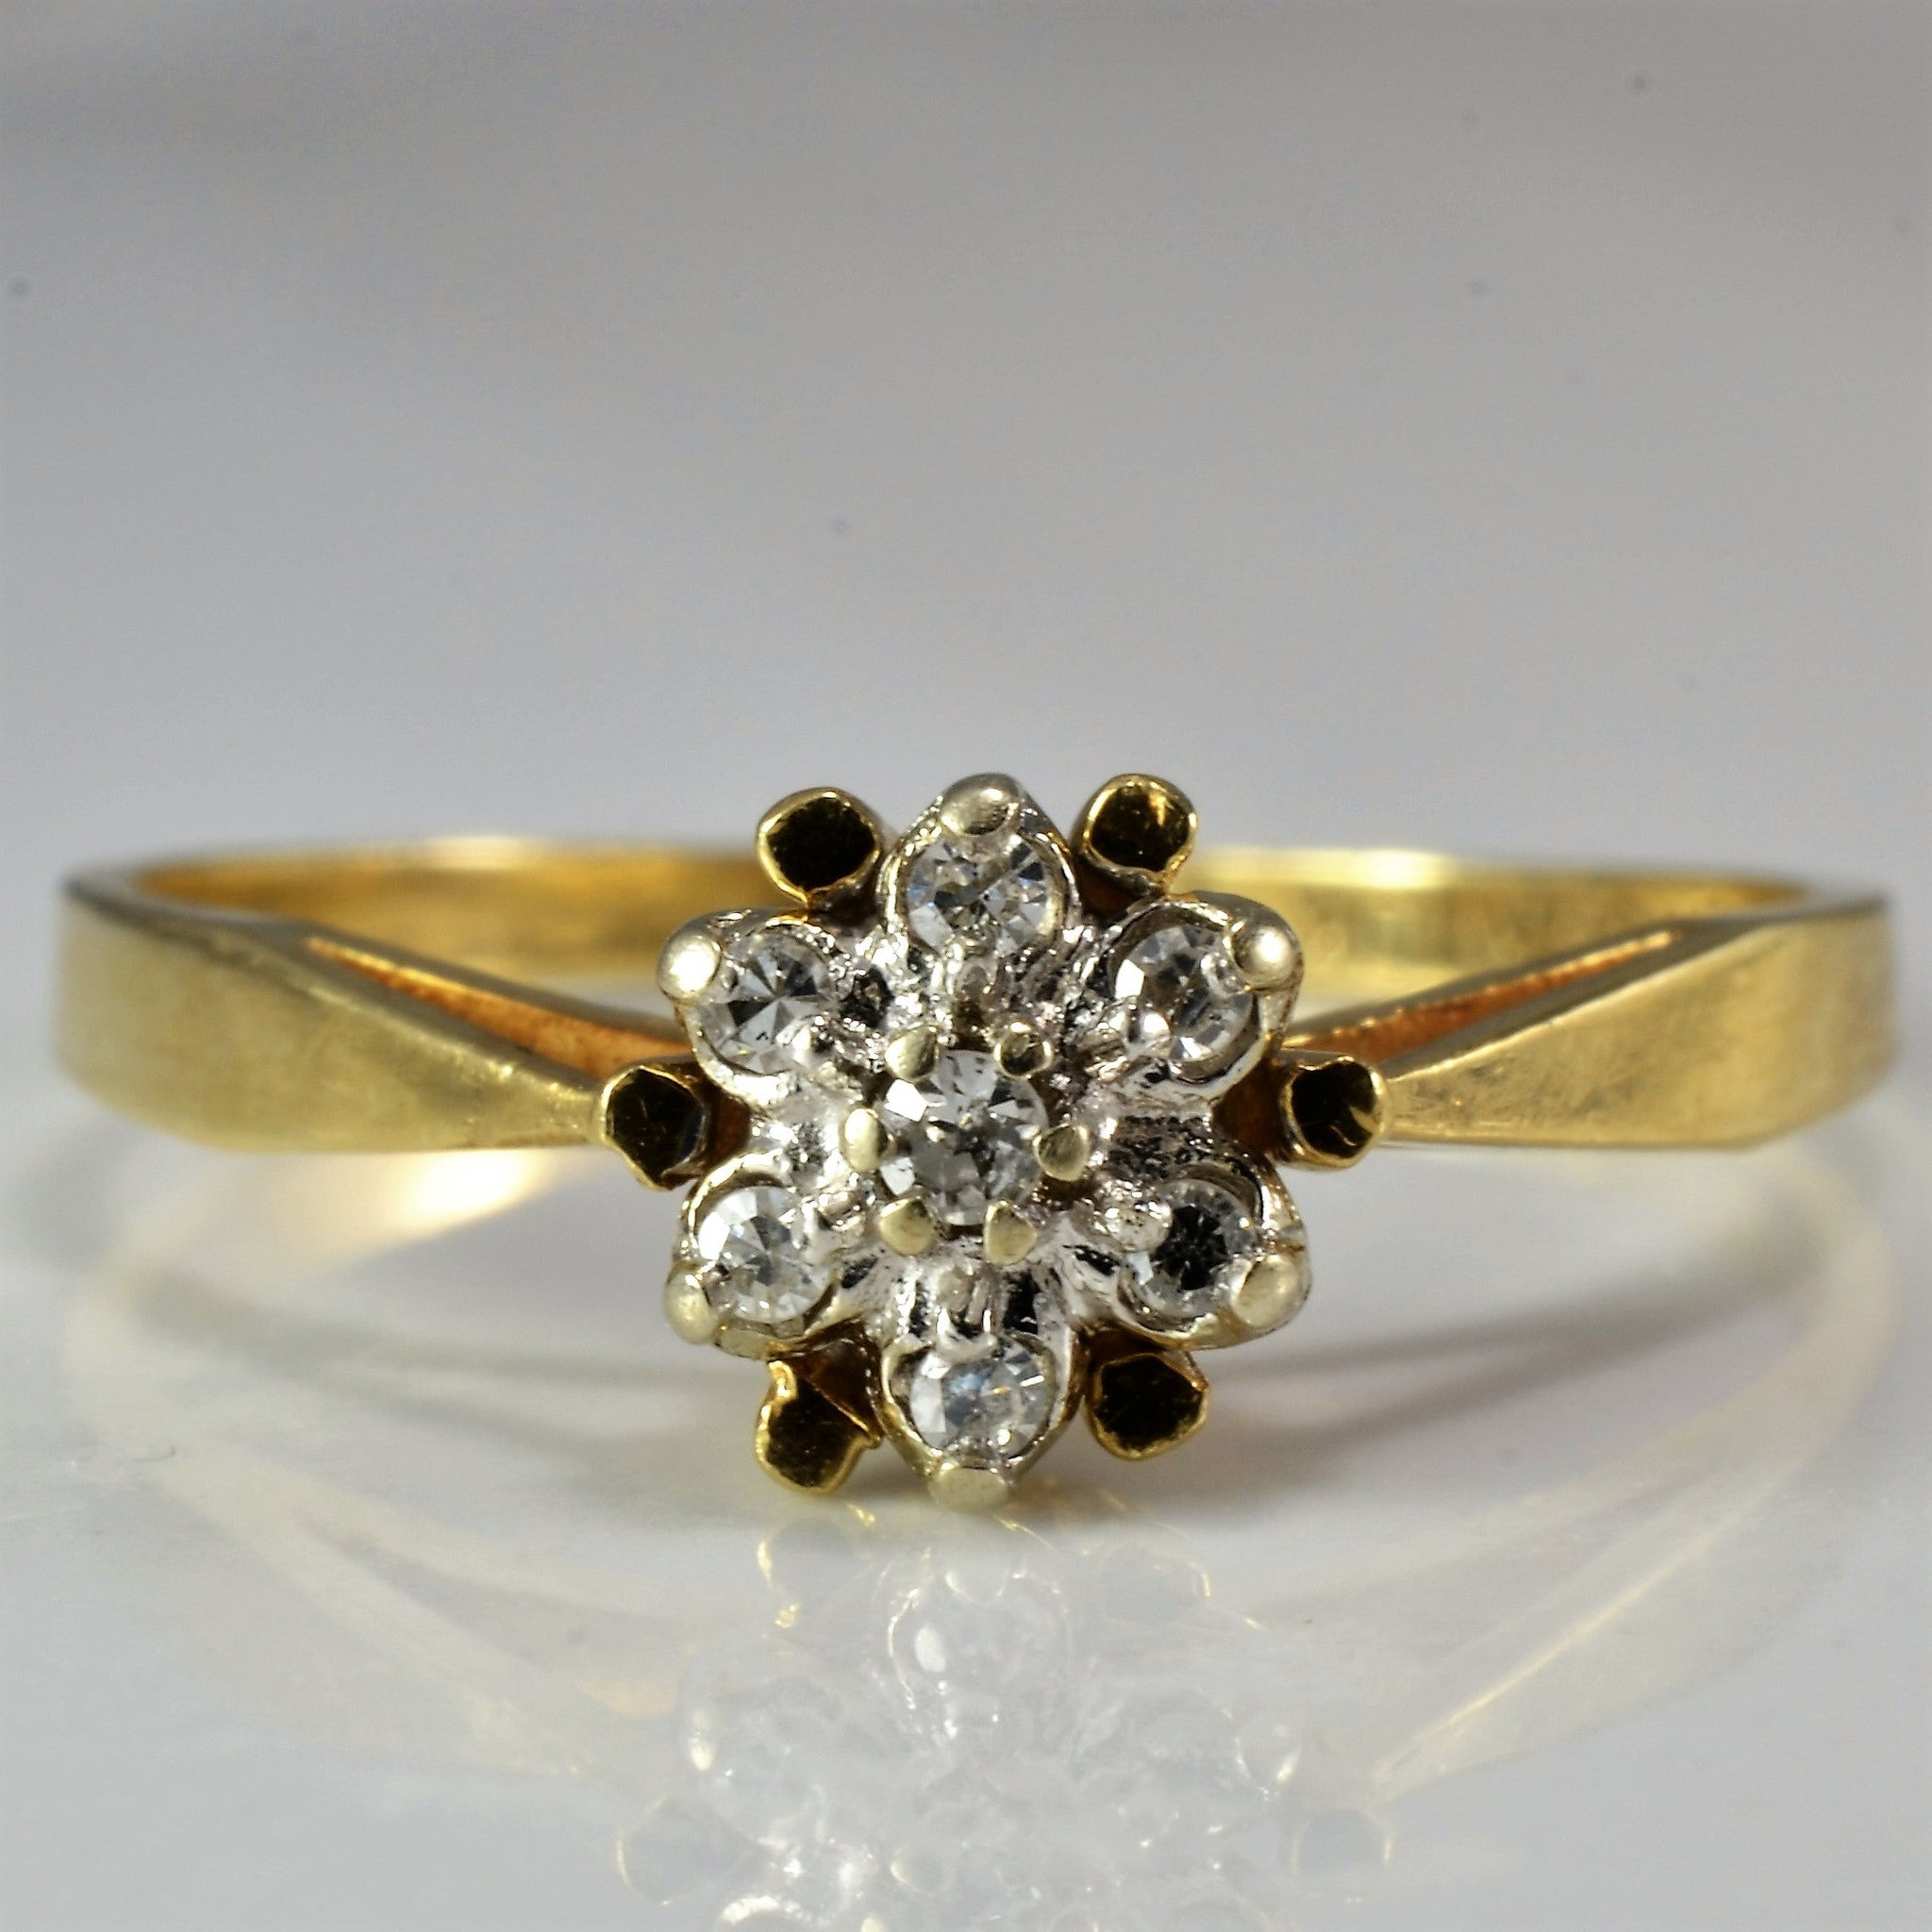 Tapered Floral Ring | 0.04 ctw, SZ 6.5 |